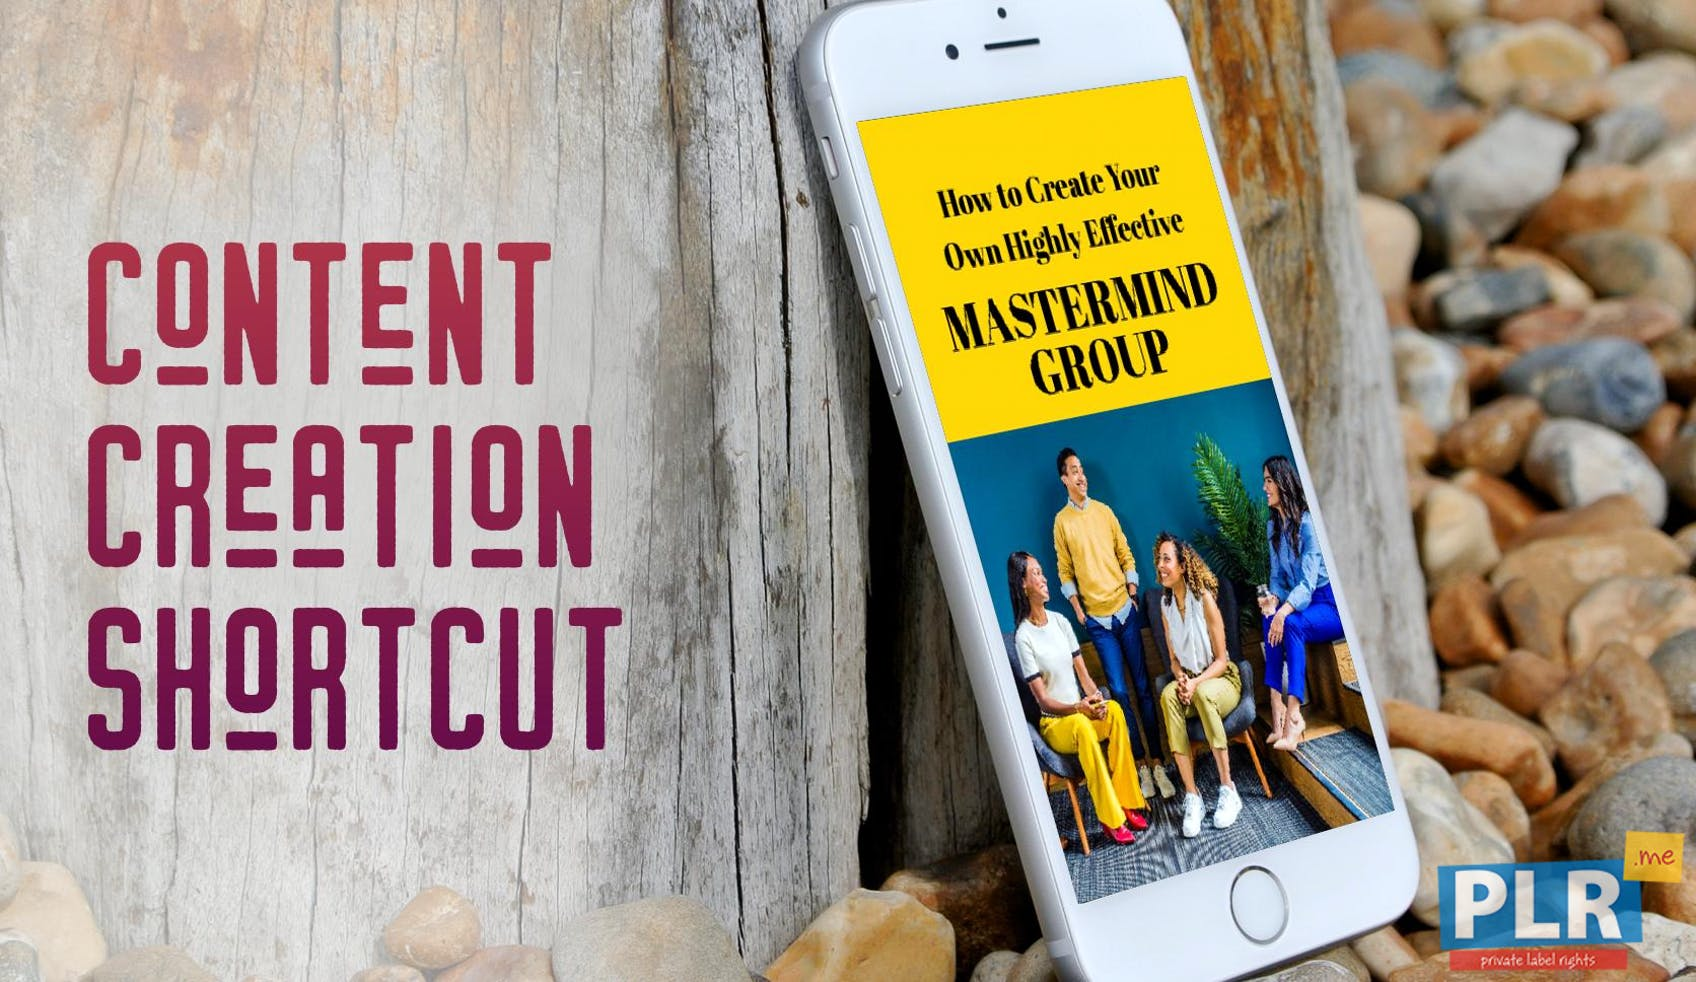 How To Create Your Own Highly Effective Mastermind Group